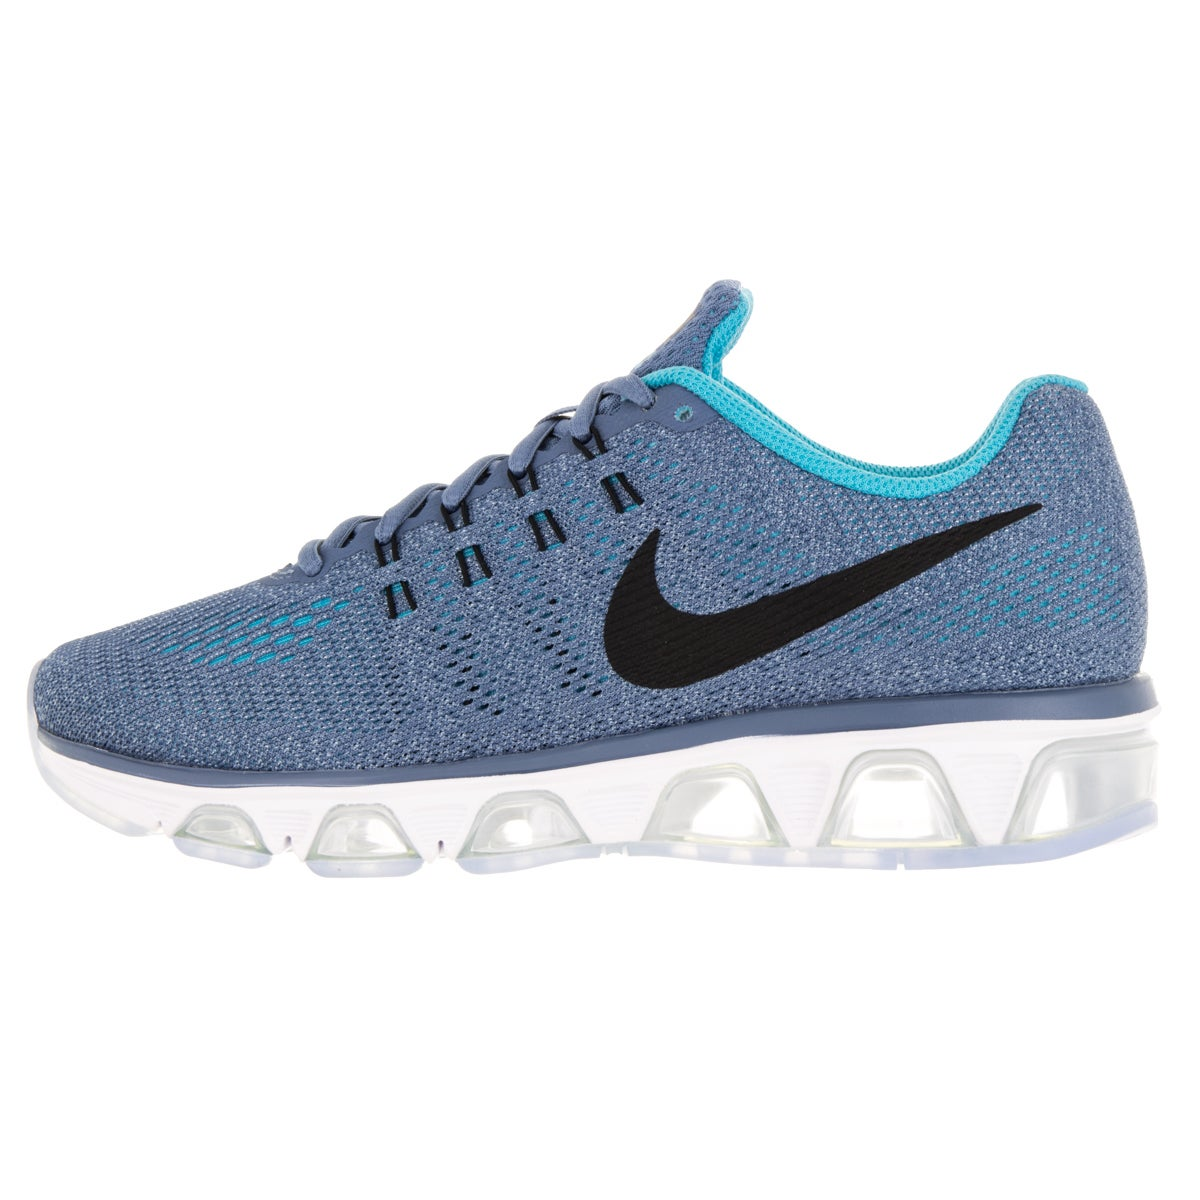 buy popular 95b2d b6957 ... spain shop nike womens air max tailwind 8 ocean fog black gmm bl bl  running shoe